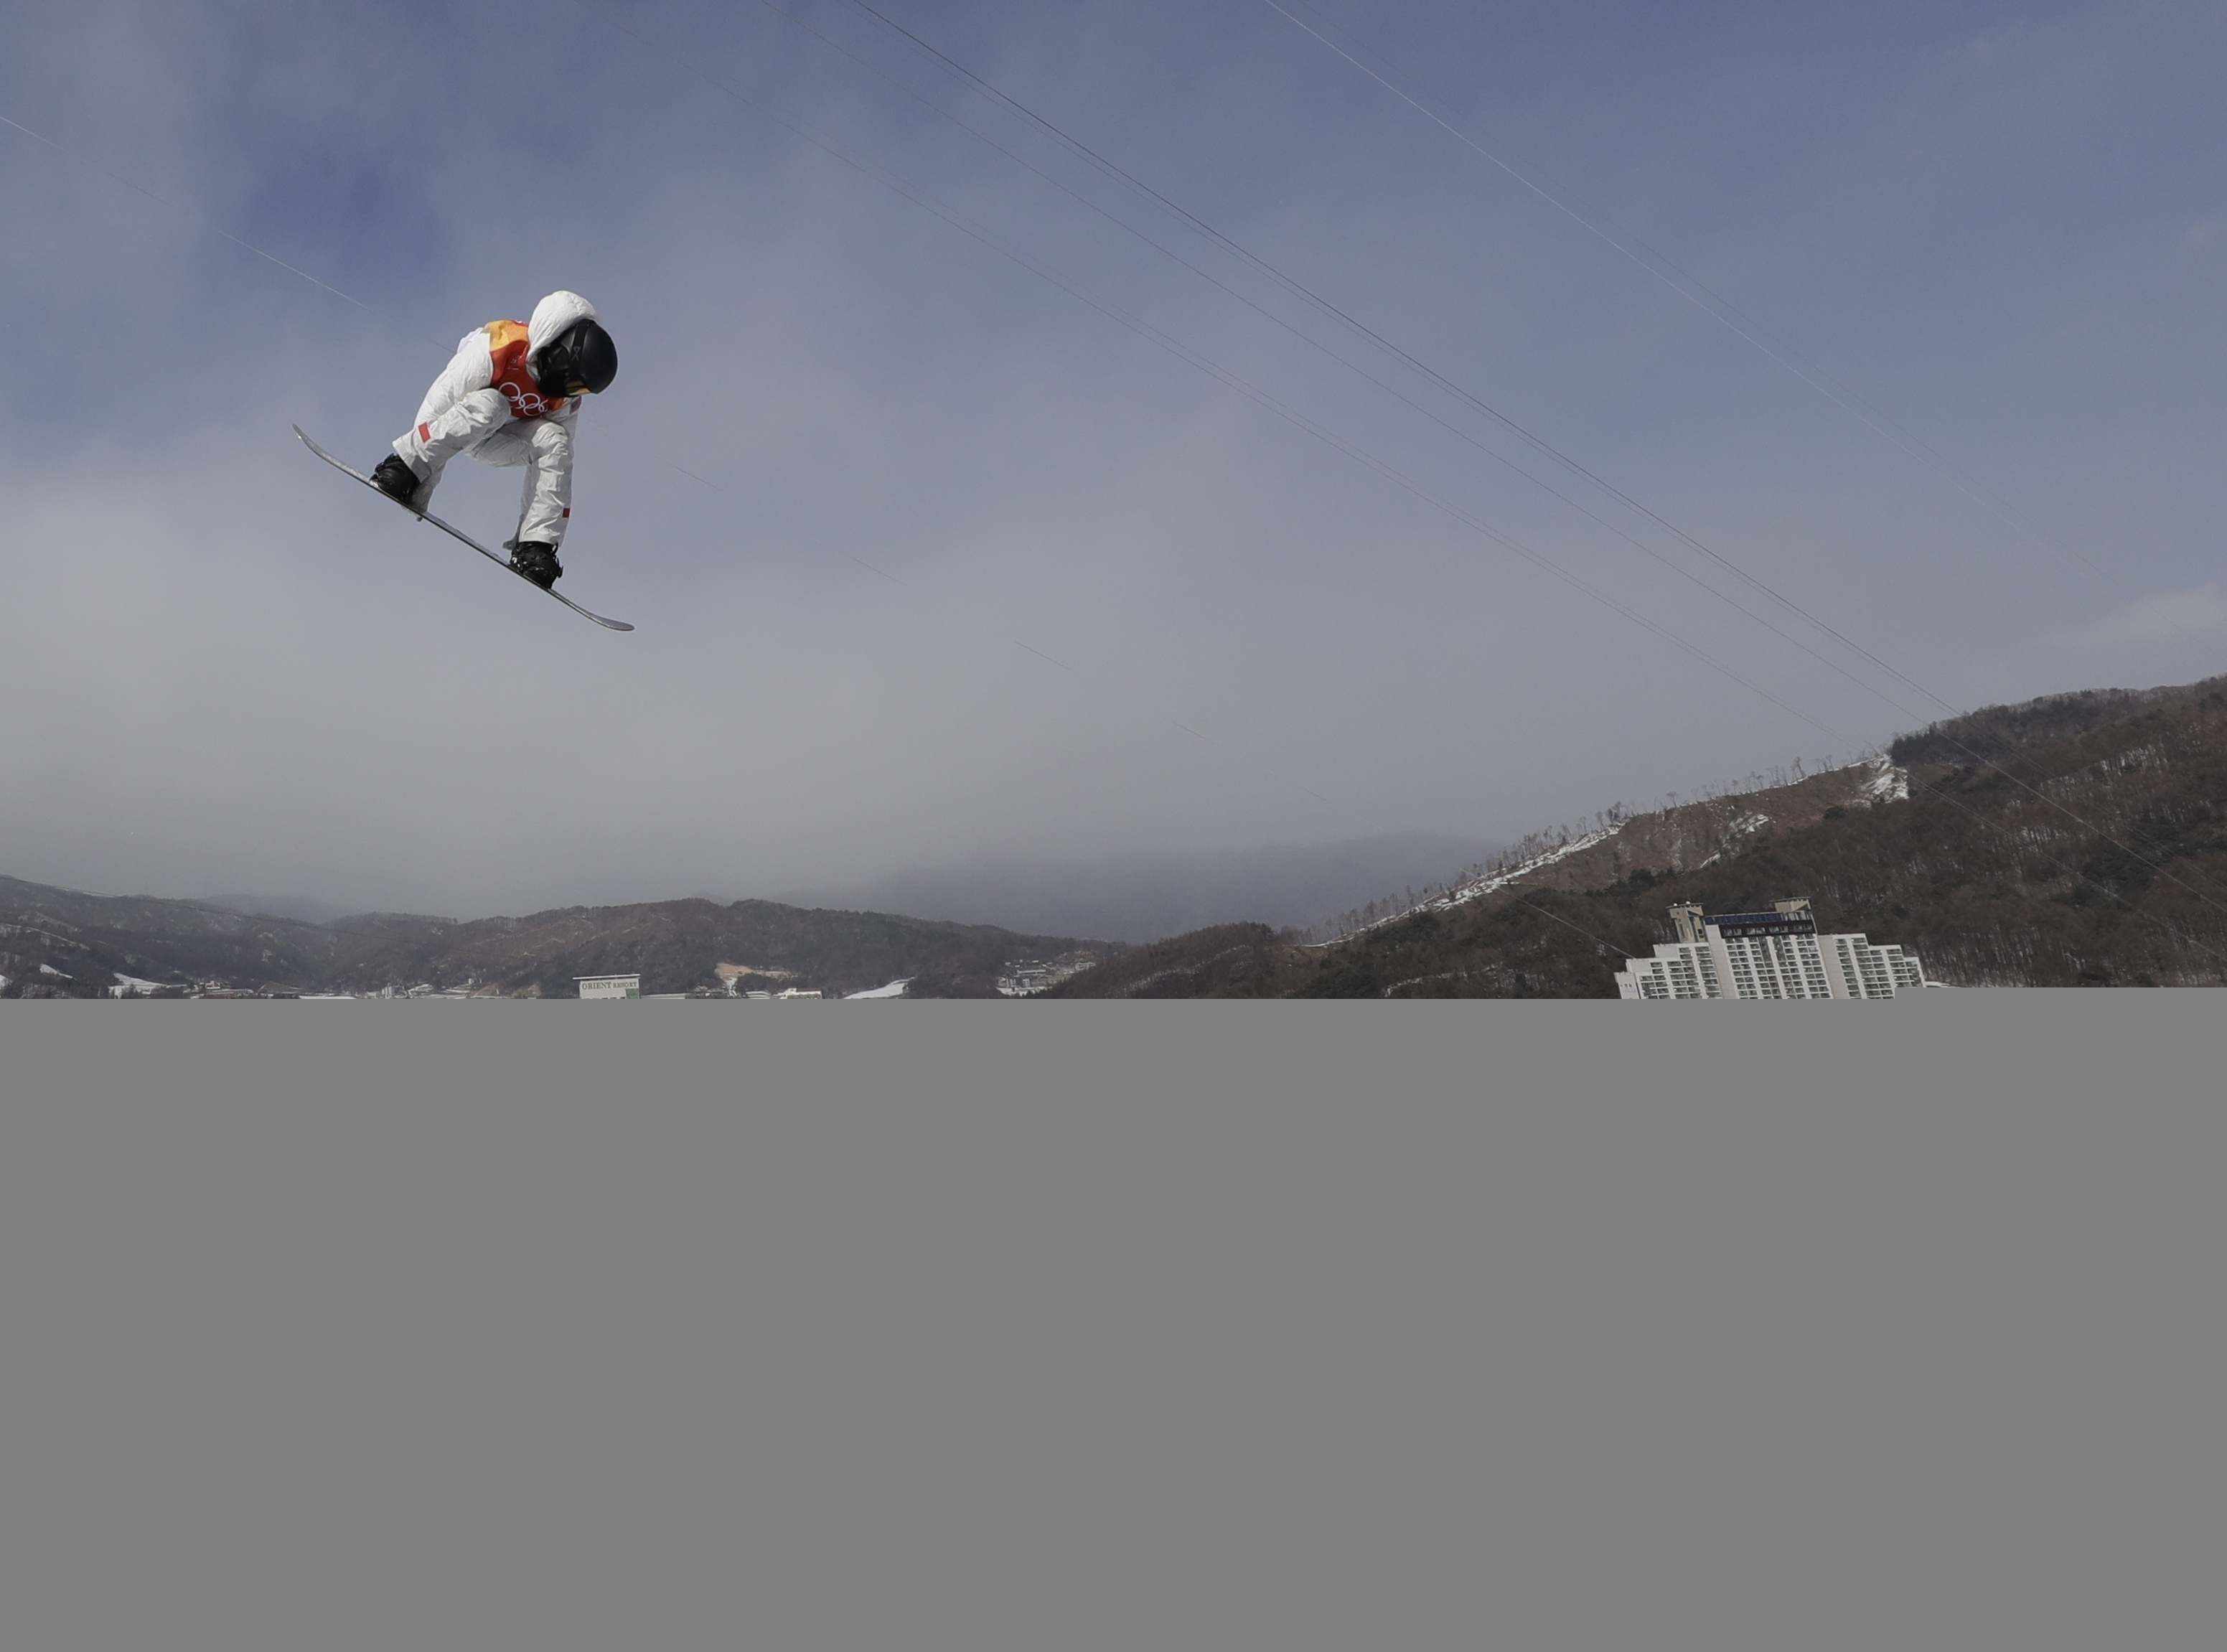 Shaun White, of the United States, during the men´s halfpipe qualifying at Phoenix Snow Park at the 2018 Winter Olympics in Pyeongchang, South Korea, Tuesday, Feb. 13, 2018.